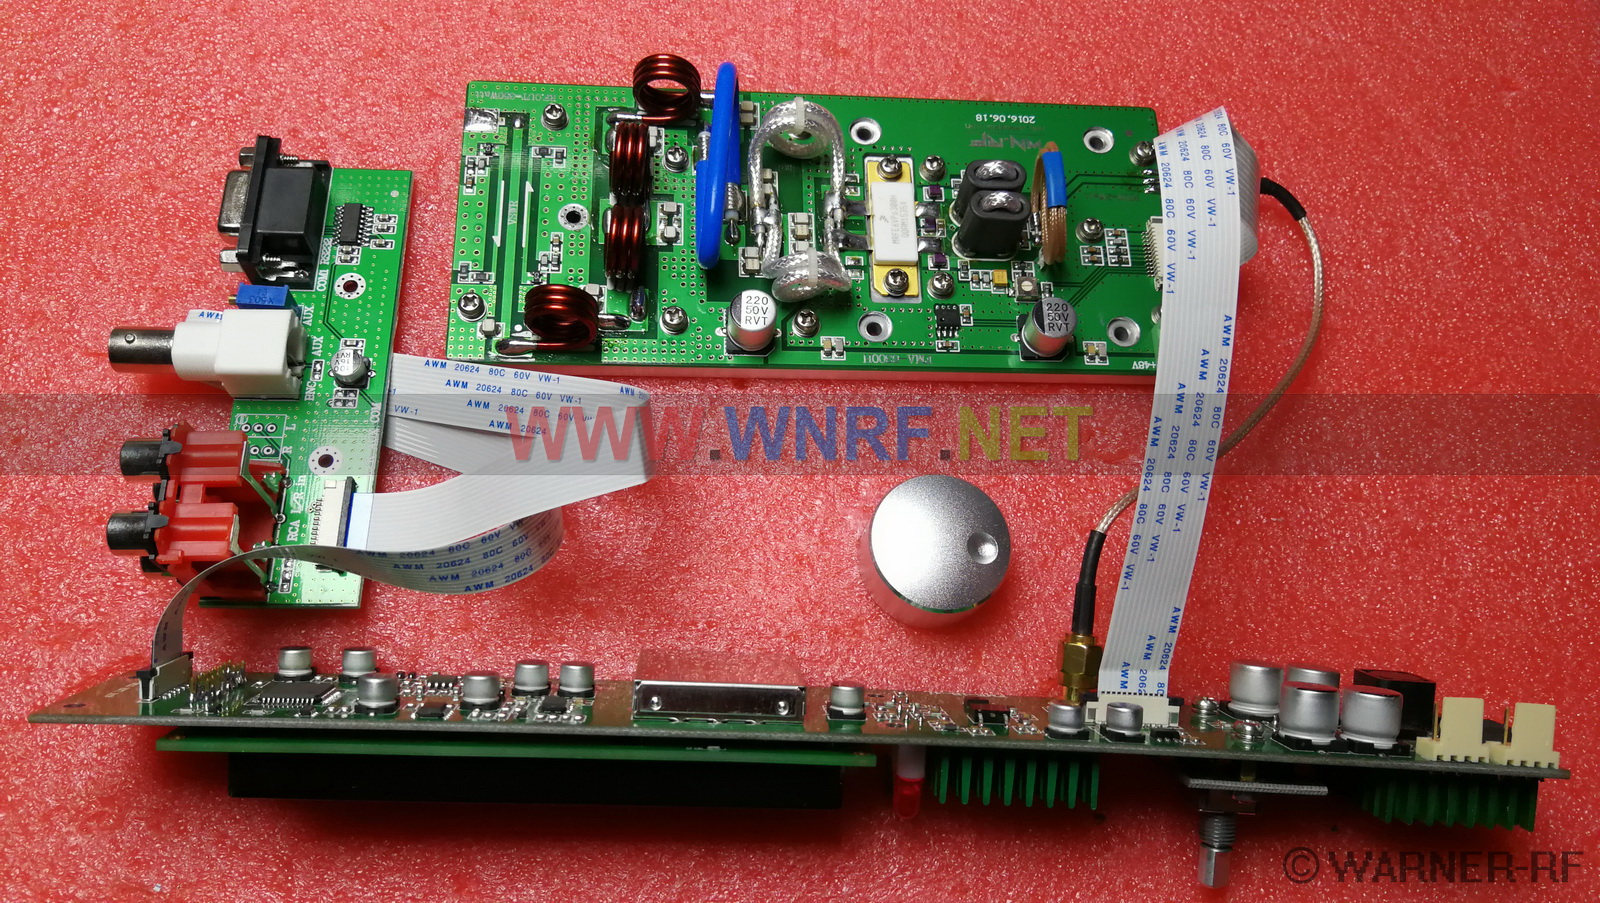 [FMA-350H] 350W FM stereo broadcast transmitter PCB KITS - Click Image to Close